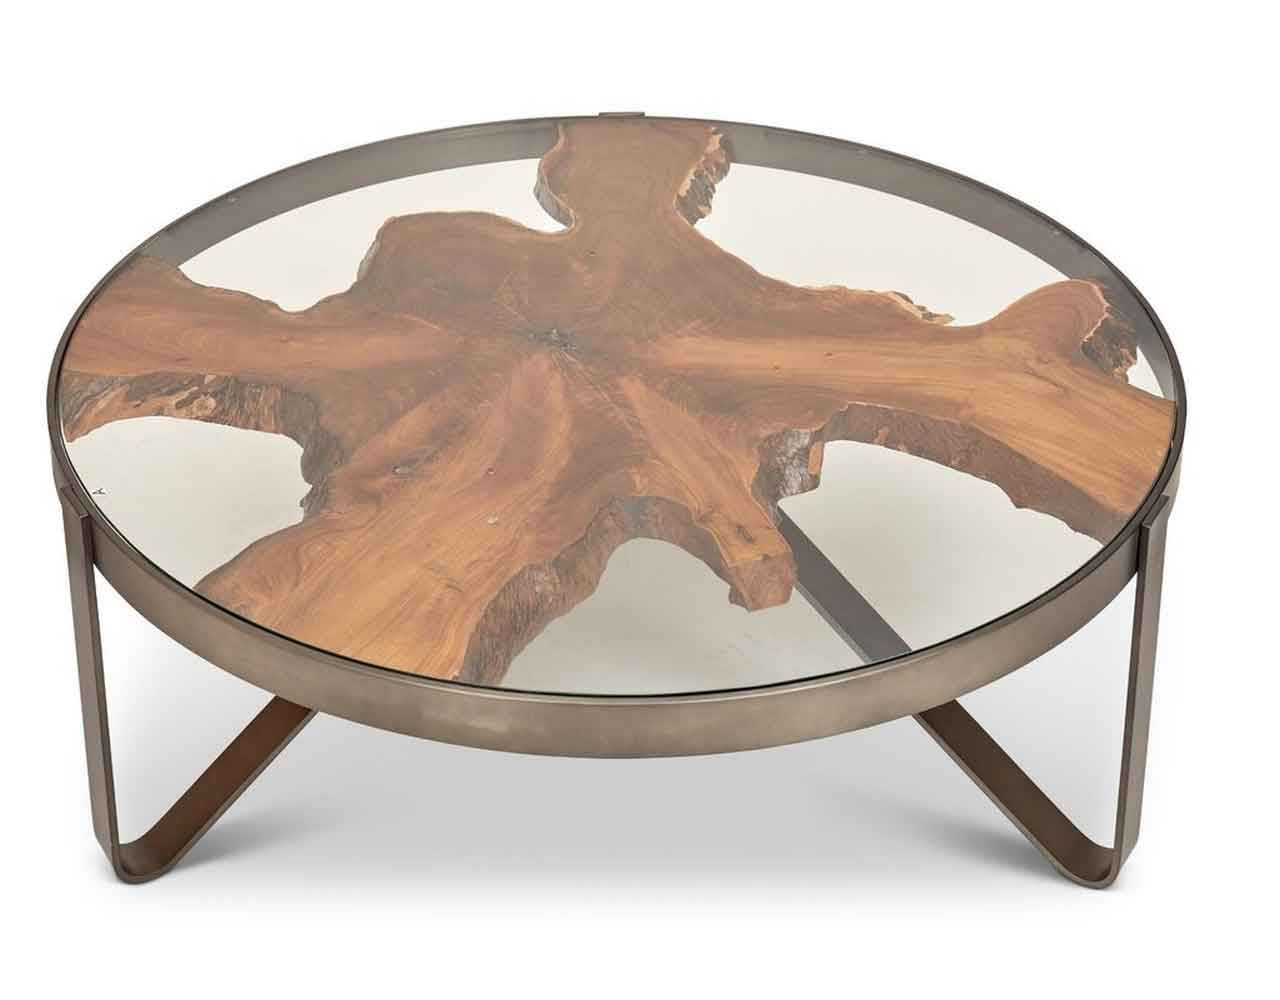 7 Wood Slice Coffee Tables To Bring In Outdoor And Add Natural Touch | Roy Home Design